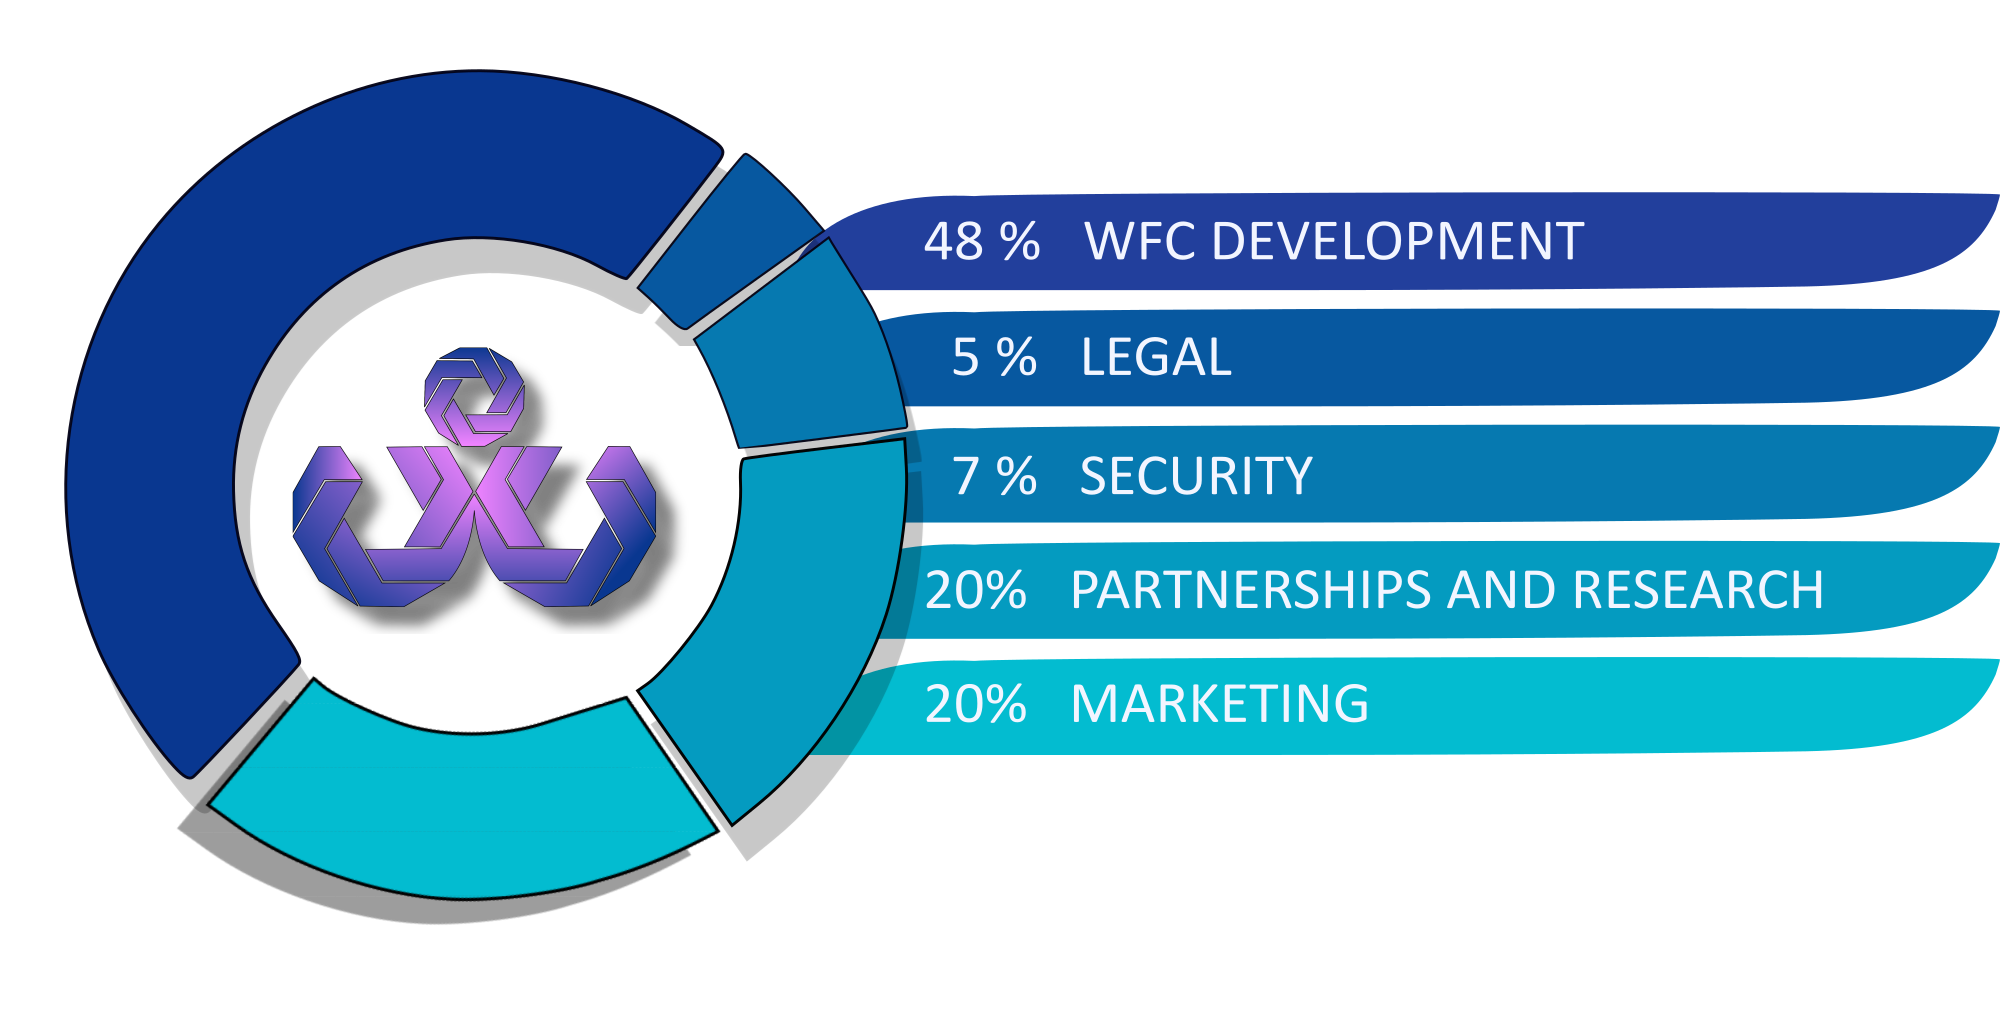 WFC ICO funds usage